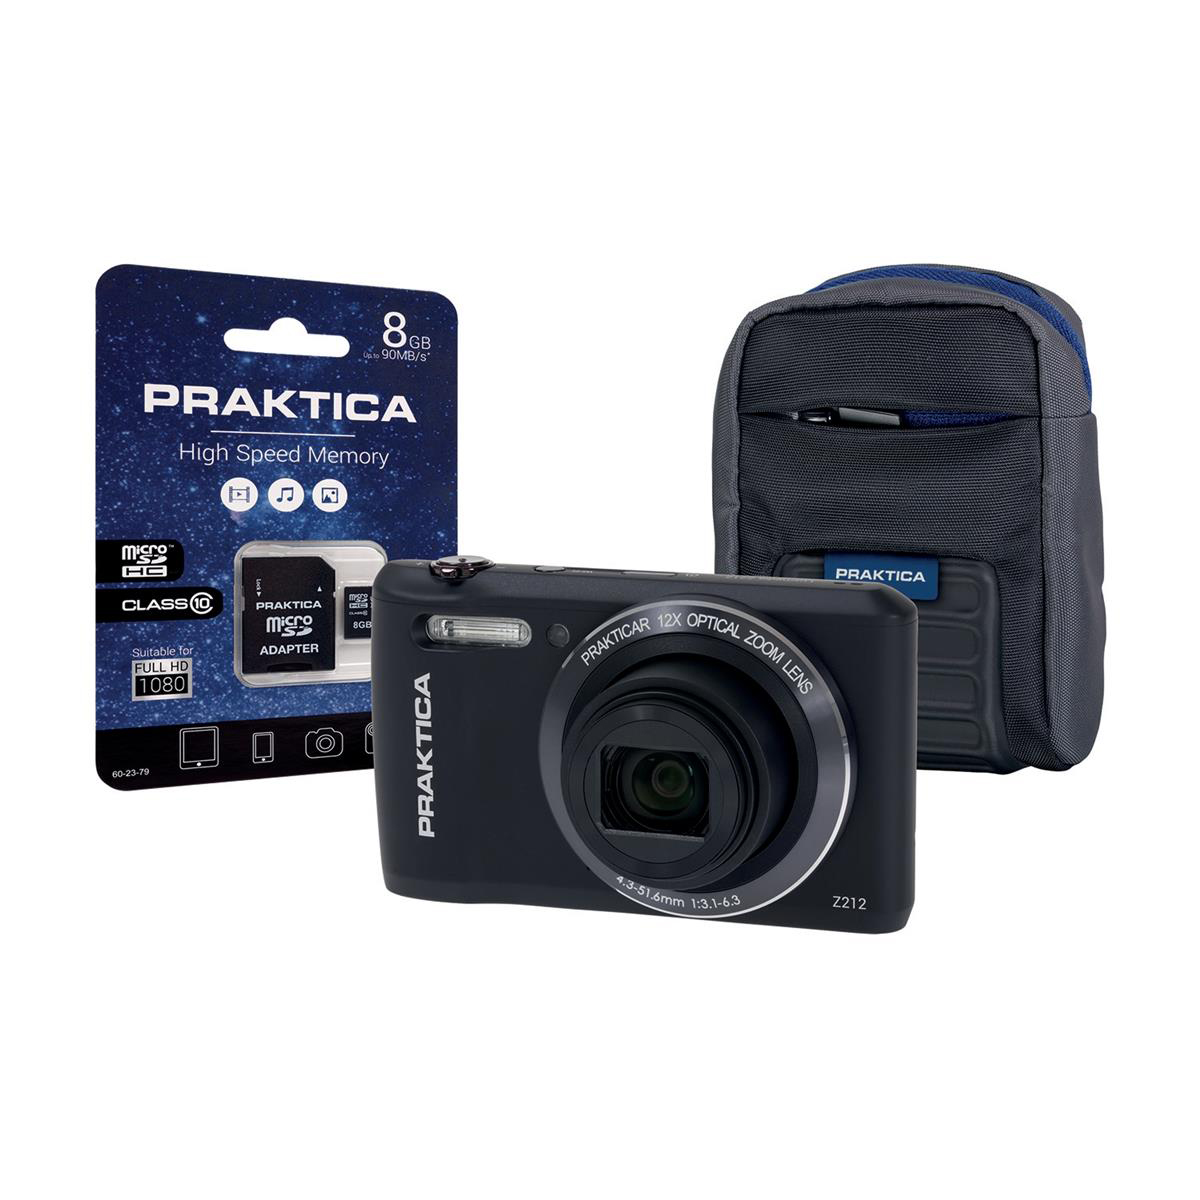 Praktica Z212 Digital Camera Kit Wide 12x Optical Zoom 20MP Case & 8GB SD card Black Ref Z212-BK 8GBCASE